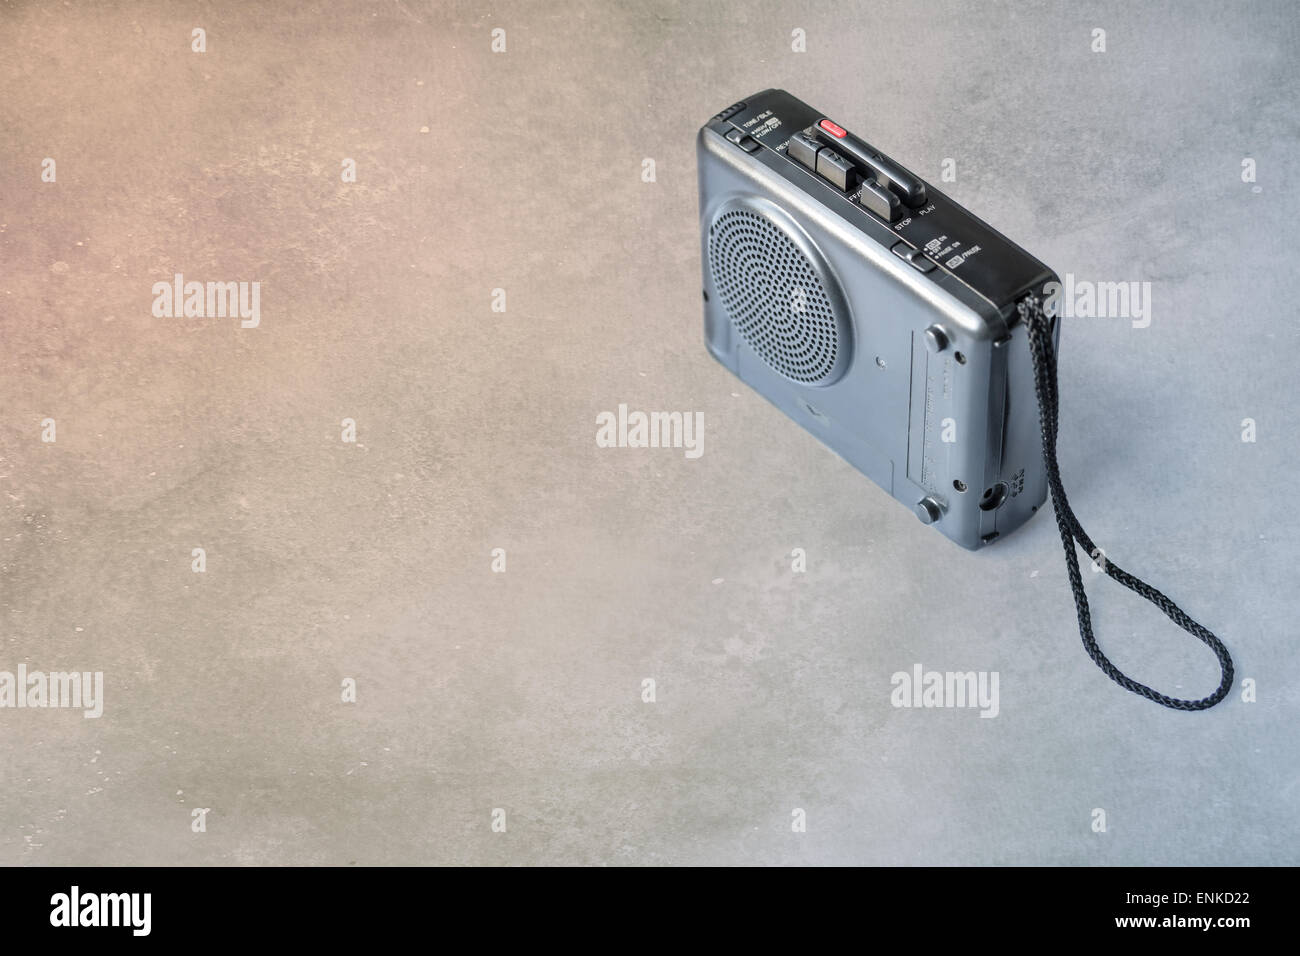 Vintage analog micro cassette tape recorder (Dictaphone) - Stock Image